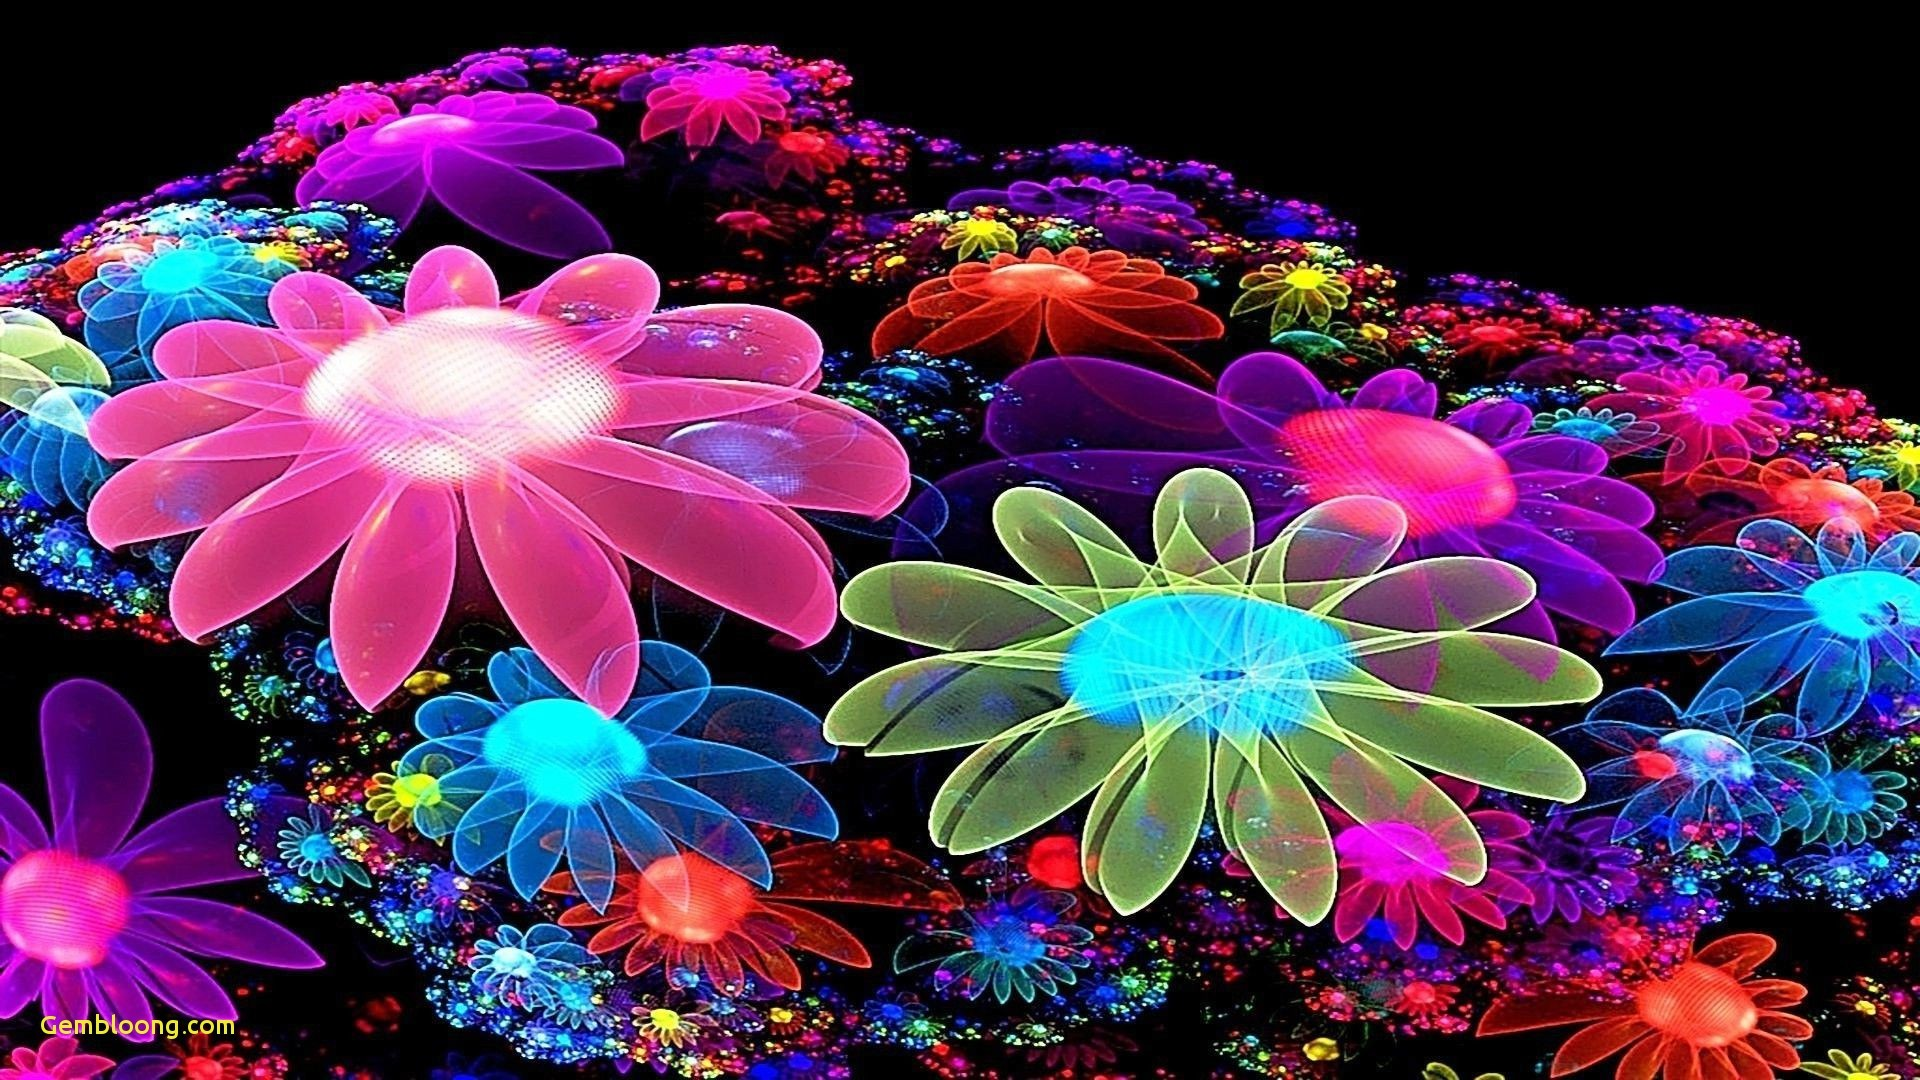 1920x1080, Amazing Colorful Wallpapers Beautiful Colorful - Flower Image 3d Hd - HD Wallpaper